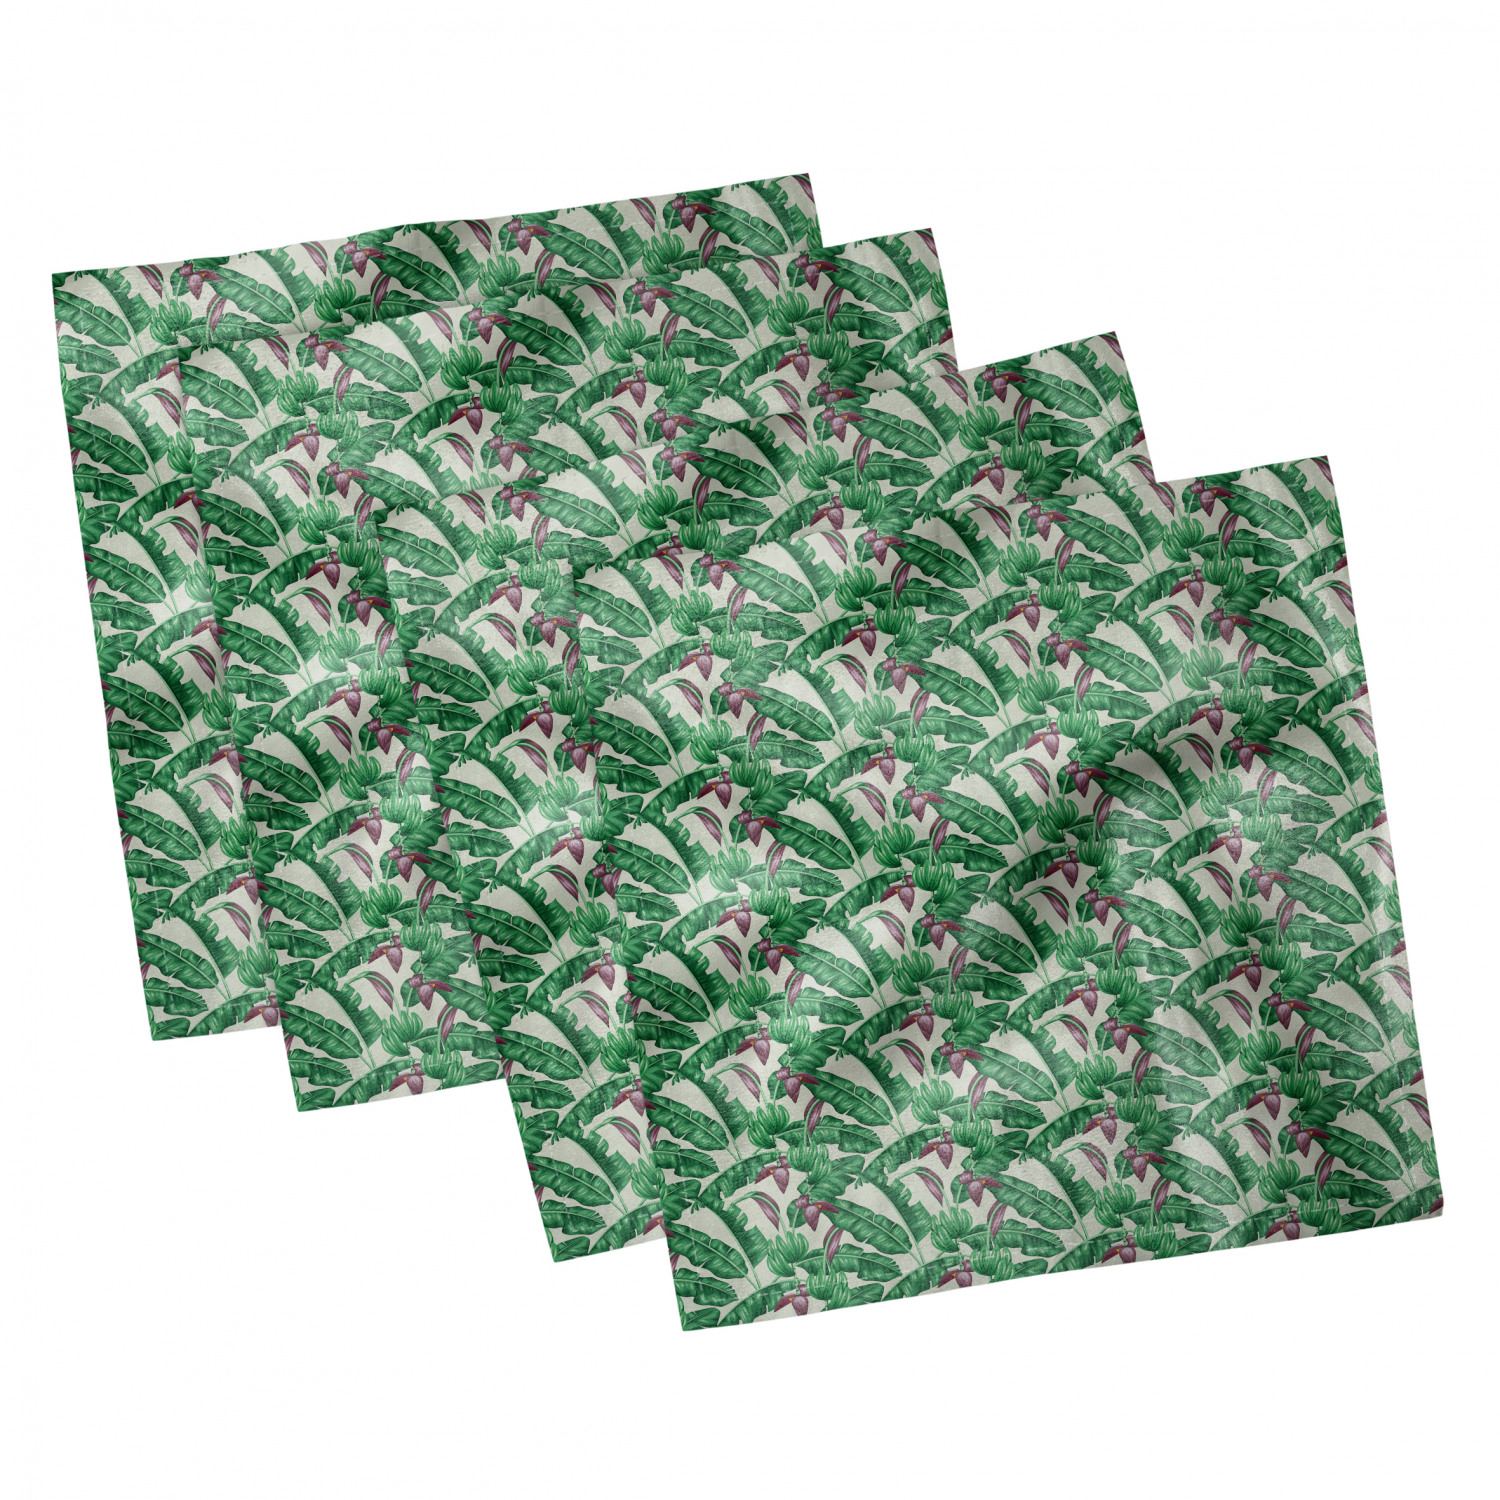 thumbnail 11 - Ambesonne-Leaves-Forest-Decorative-Satin-Napkins-Set-of-4-Party-Dinner-Fabric